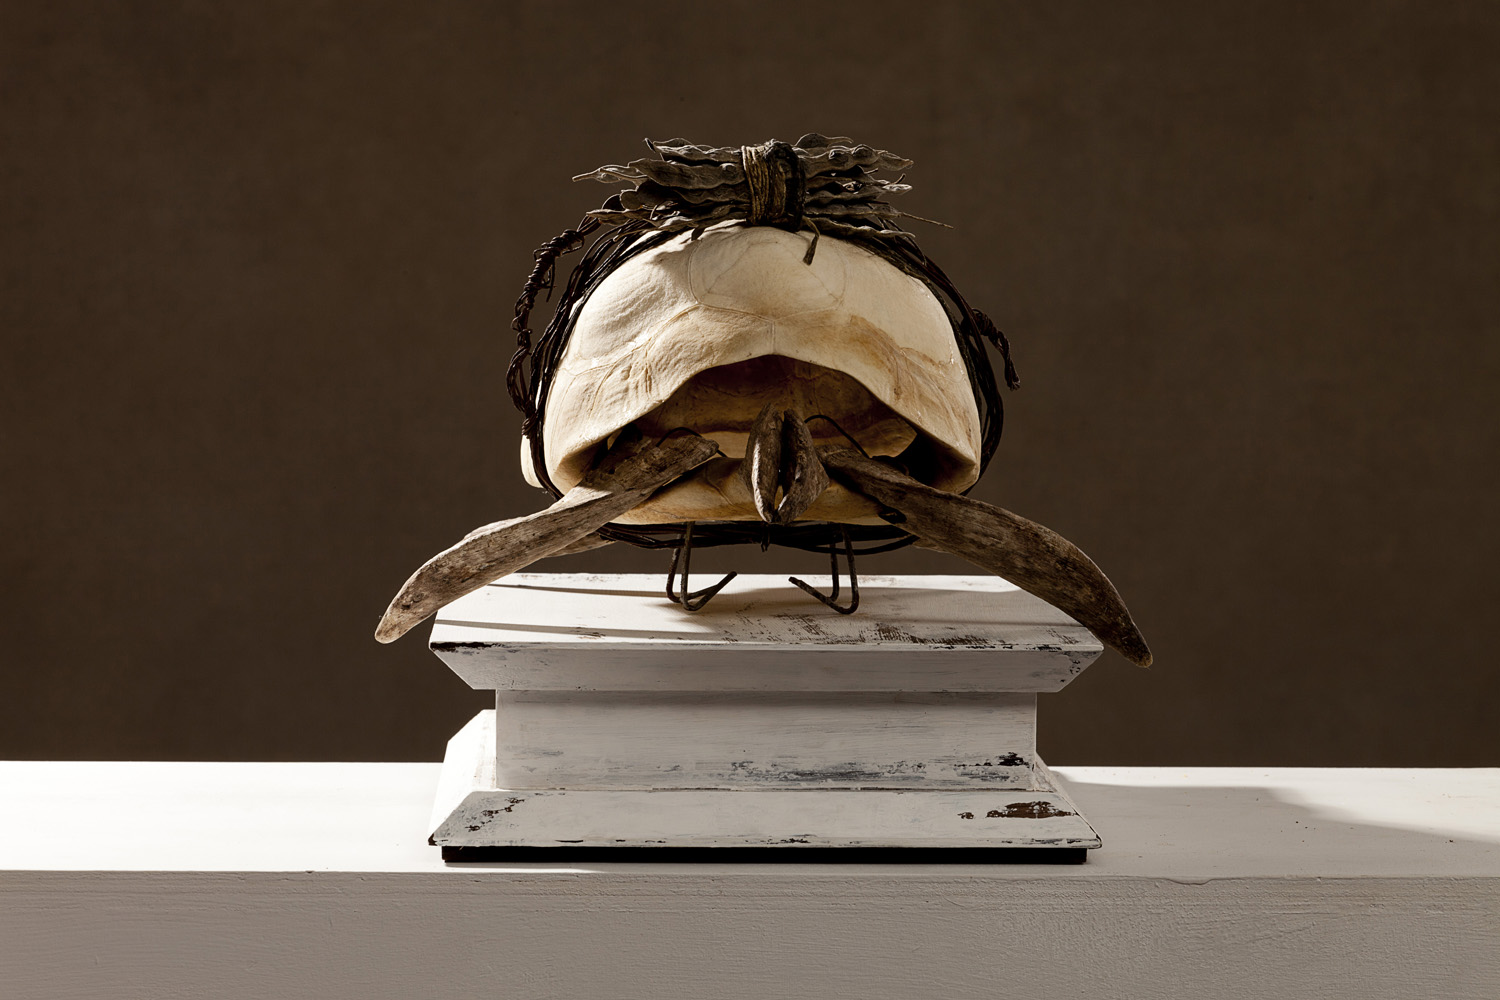 Jabuti Piranga, 2011 37 x 33 x 20 cm / 14.6 x 13 x 7.9 inches Mixed Media / Turtle Carbonaria